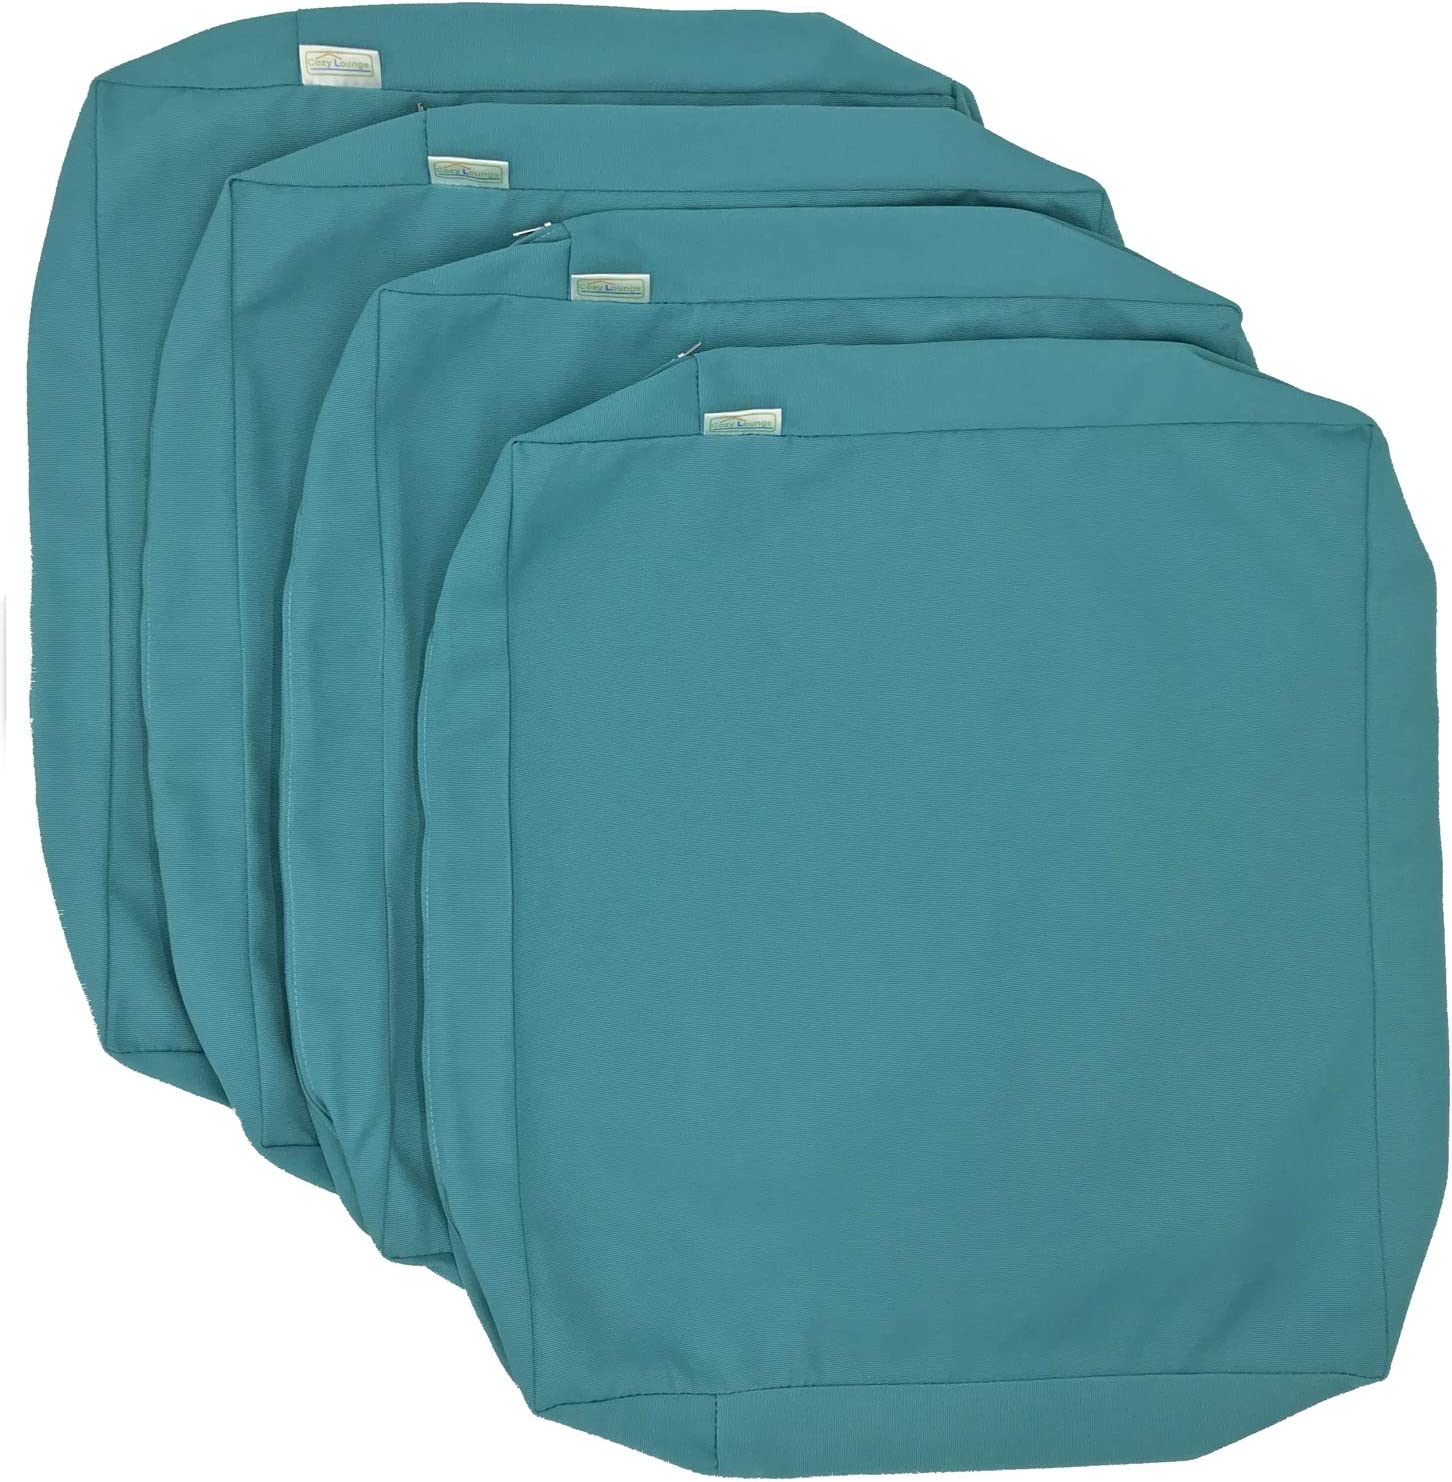 "CozyLounge Serenity Teal Outdoor Water Repellent Patio Chair Cushion Seat Pillow Covers (22""x20""x4"" (4 Covers))"